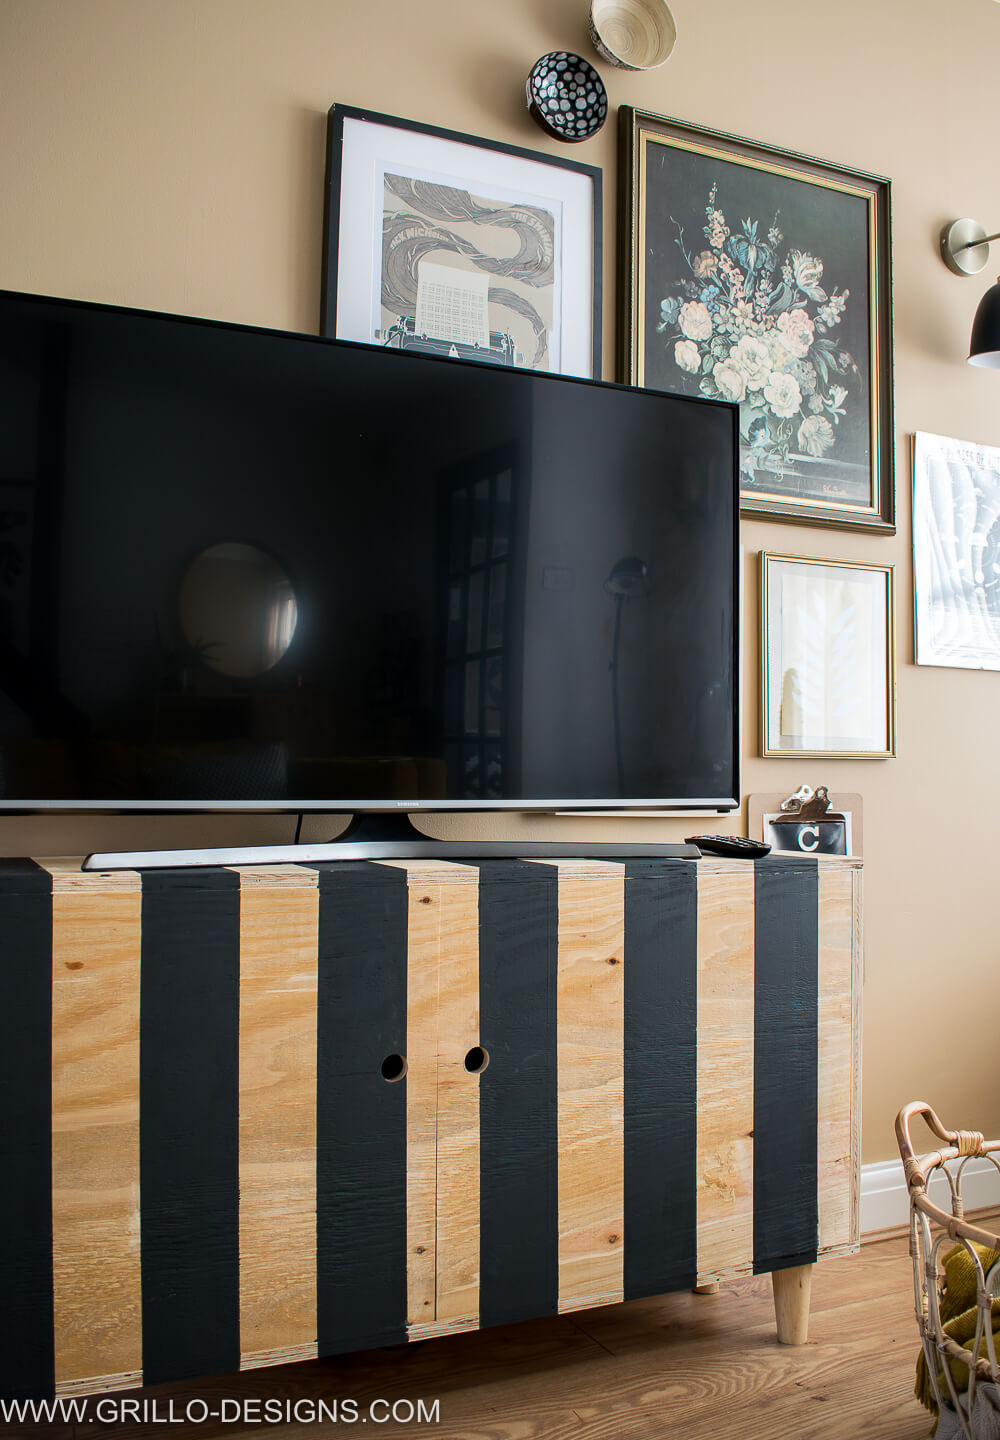 Easy diy tutorial on how to build a diy tv stand